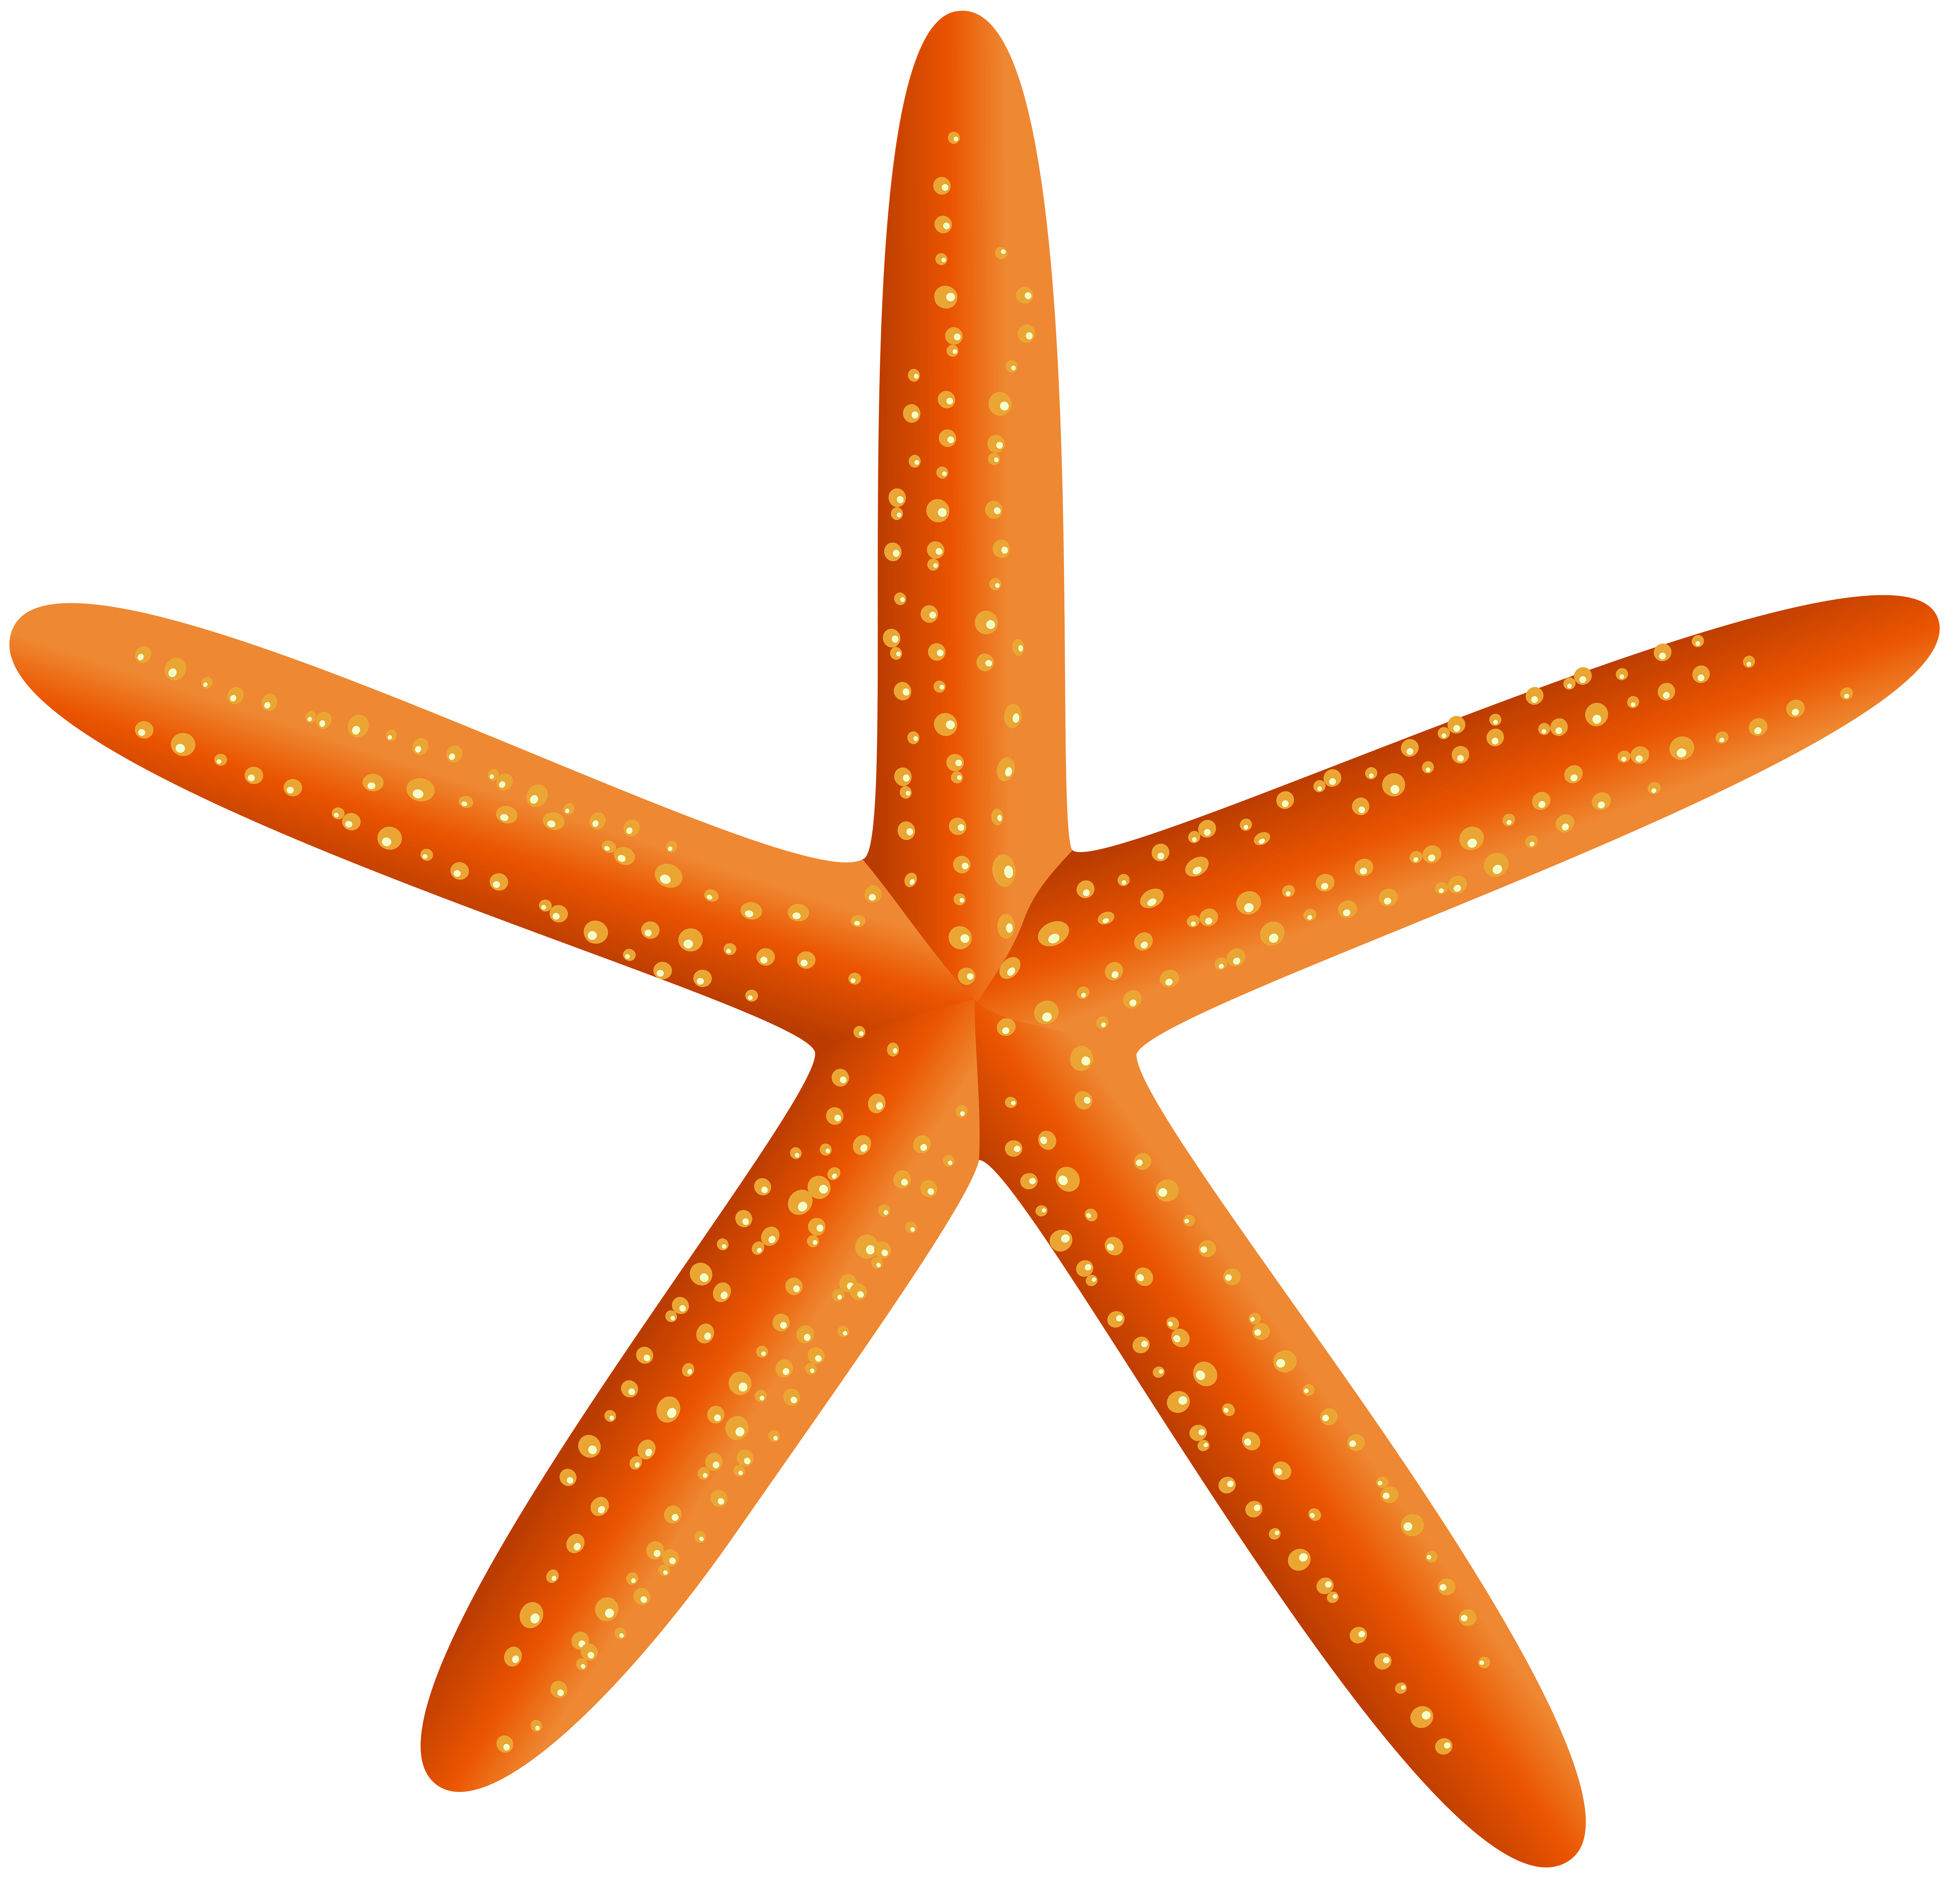 Winter starfish clipart clipart images gallery for free.